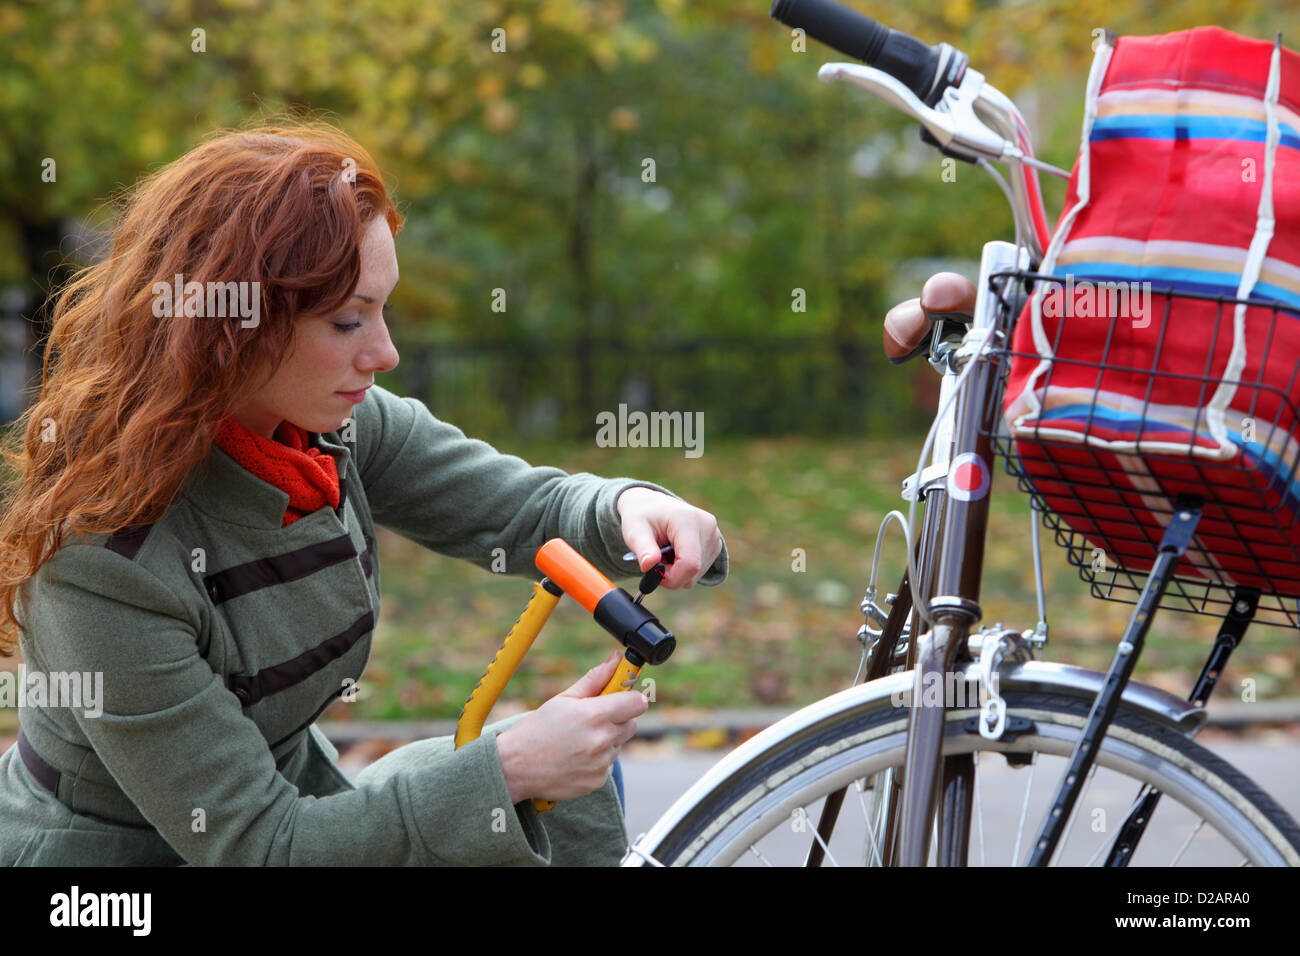 Woman locking up bicycle in park - Stock Image